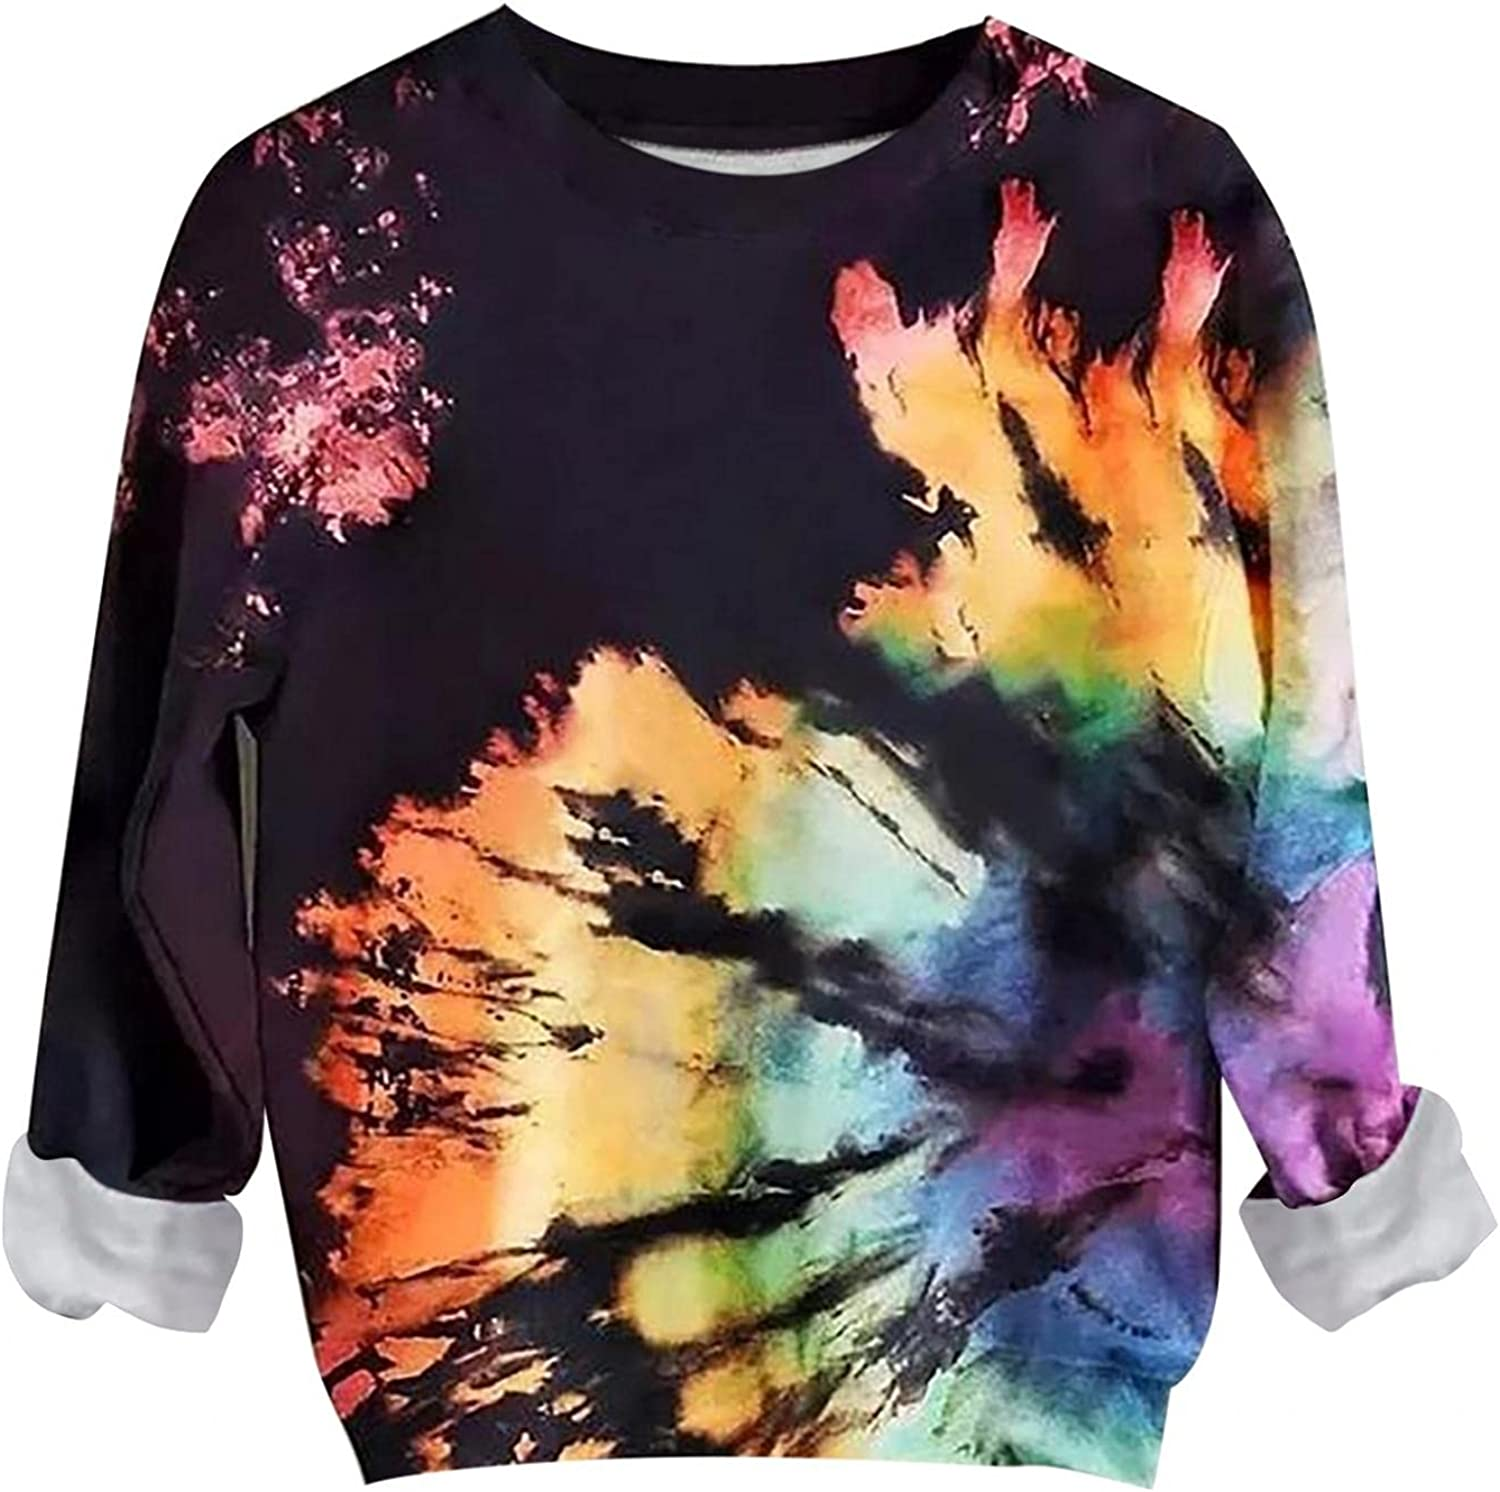 AODONG Sweaters for Women Long Sleeves Rainbow Printed Sweatshirts Fashion O-Neck Loose Fit Blouse Tops